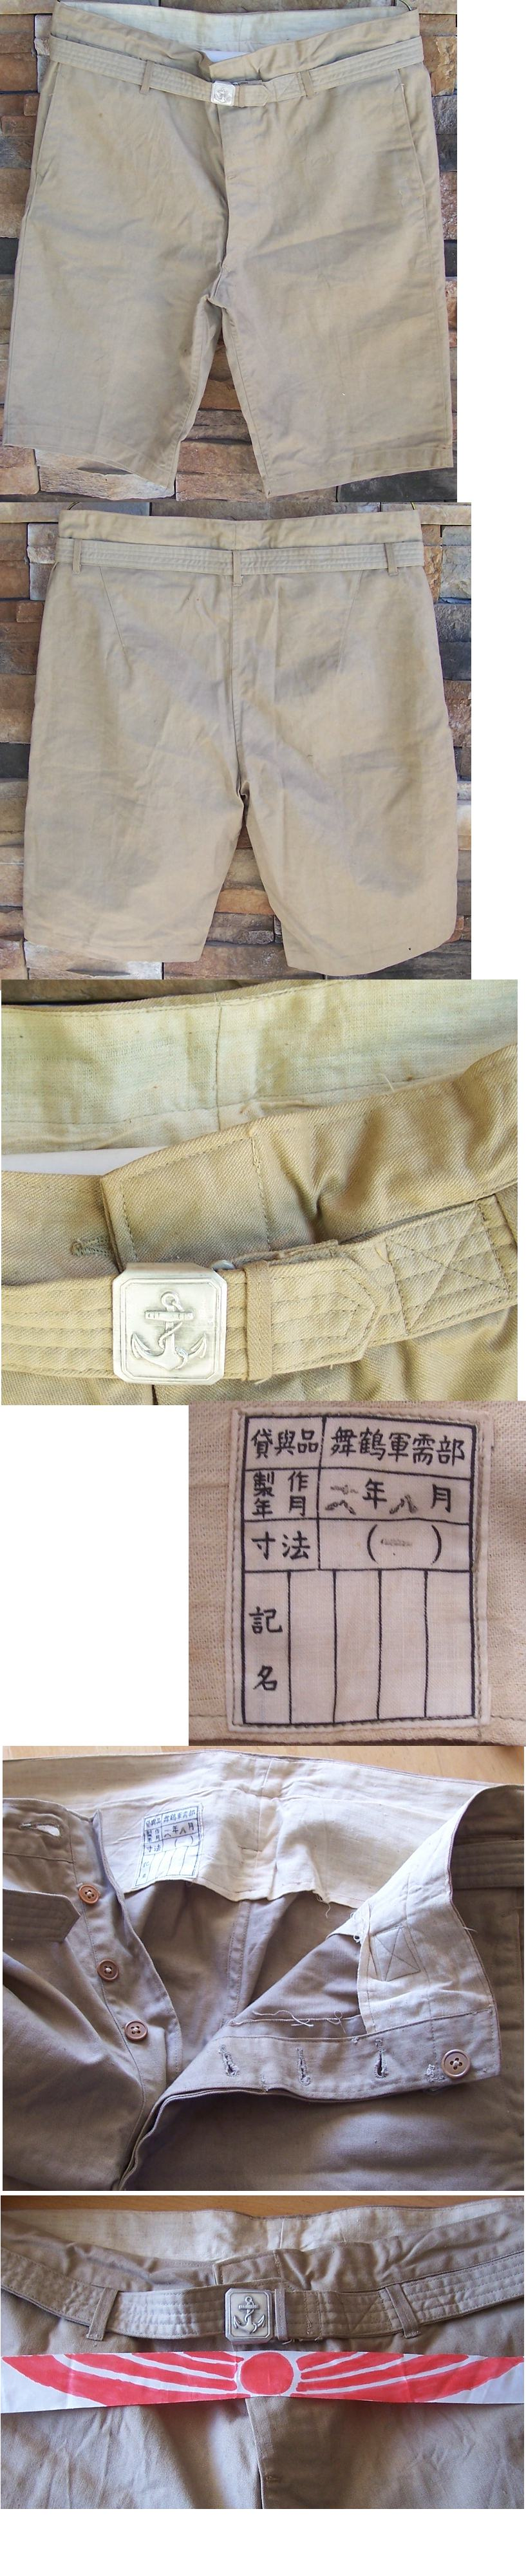 IJN Issue tropical Shorts Belt and Ribbon